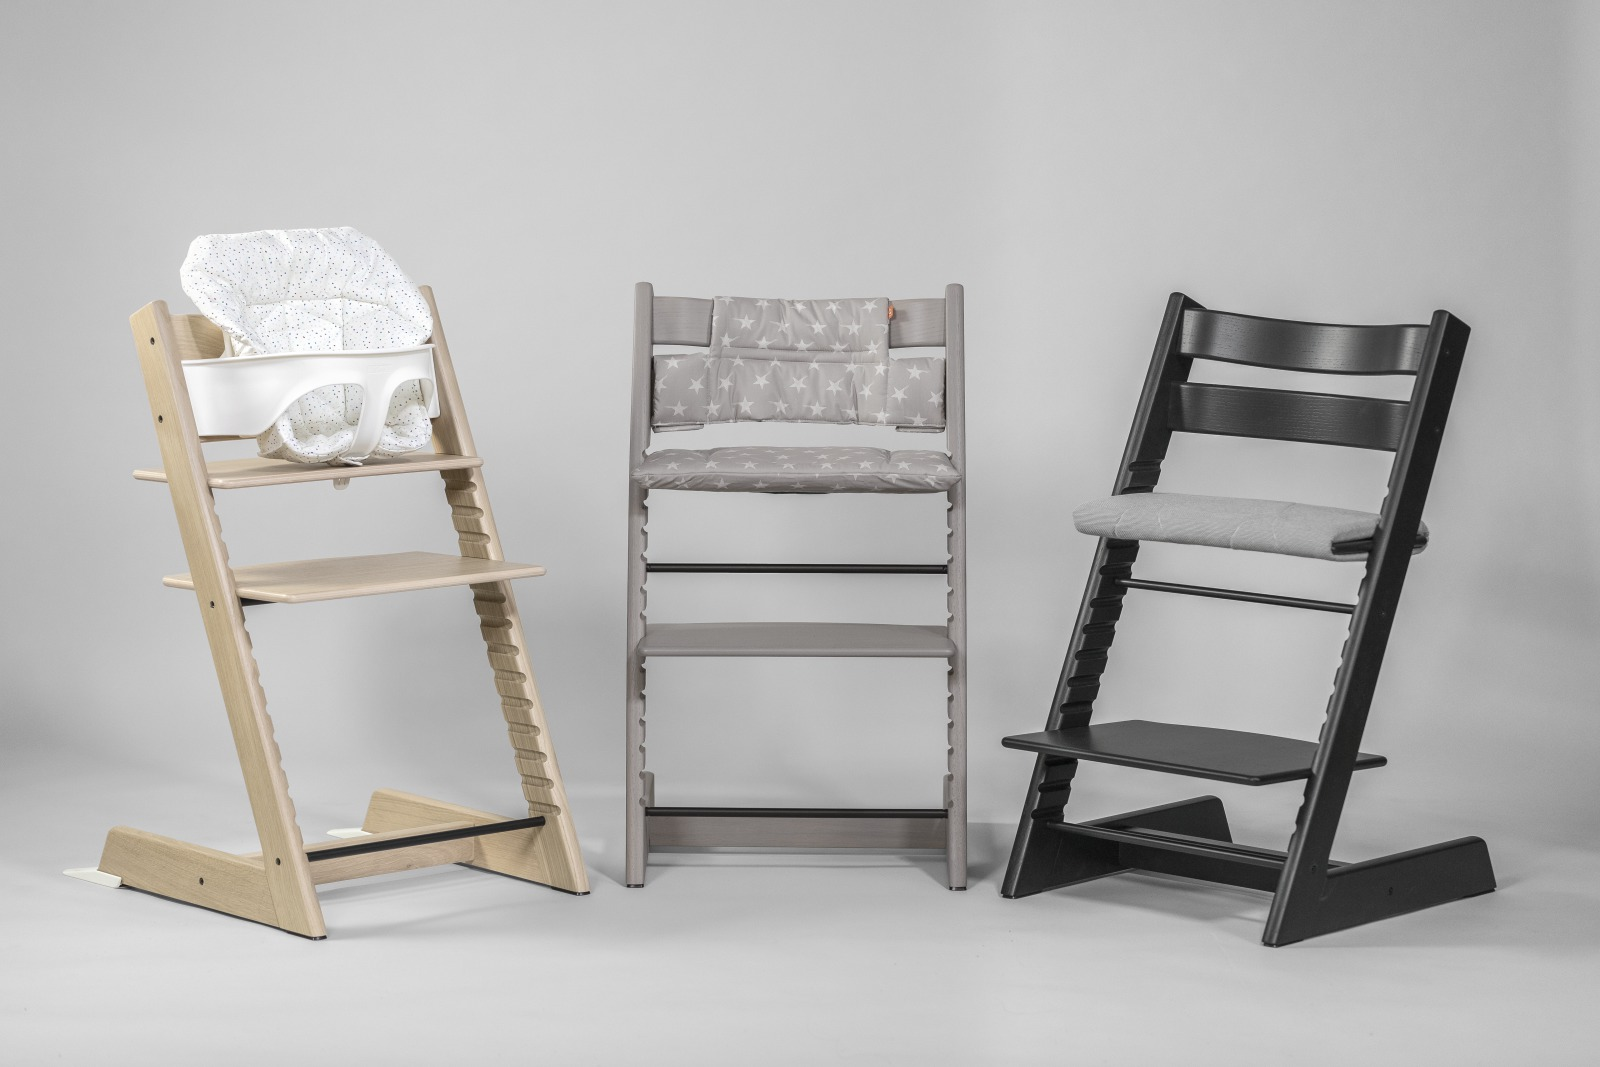 Merveilleux Tripp Trapp® Chair, Oak Black, Greywash And White, With White Baby Set